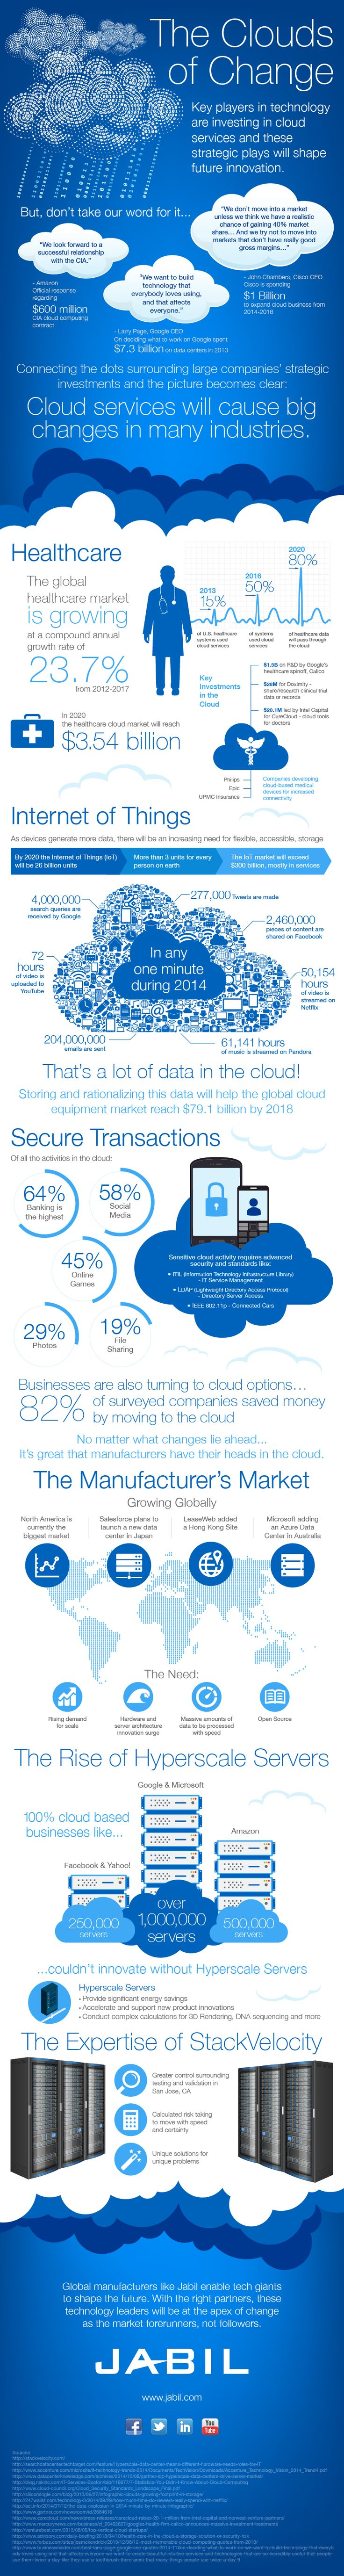 The #Clouds of Change #cloud-based #technologies